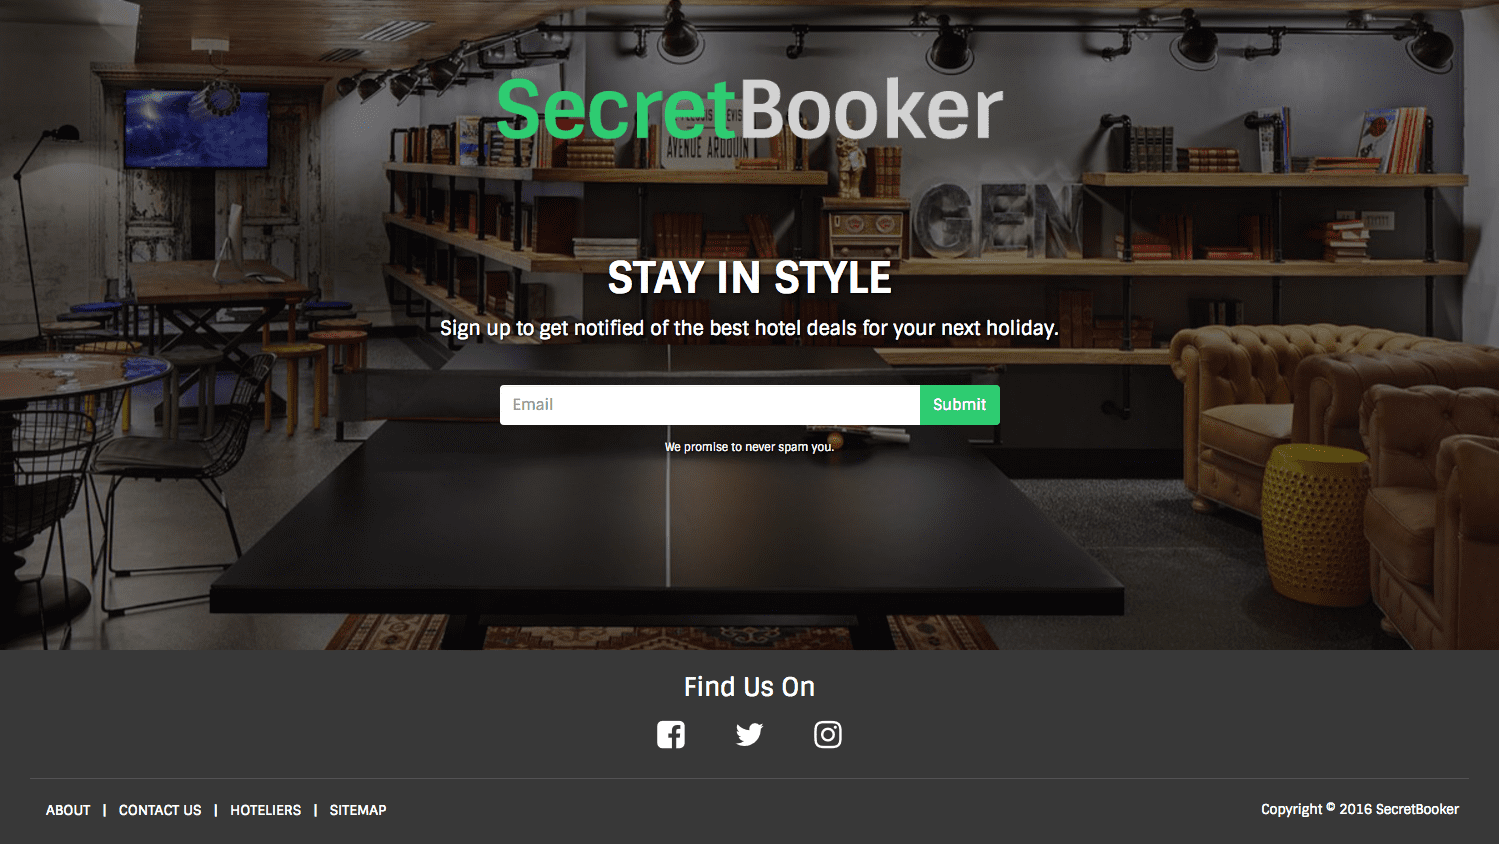 landing page for 'SecretBooker'